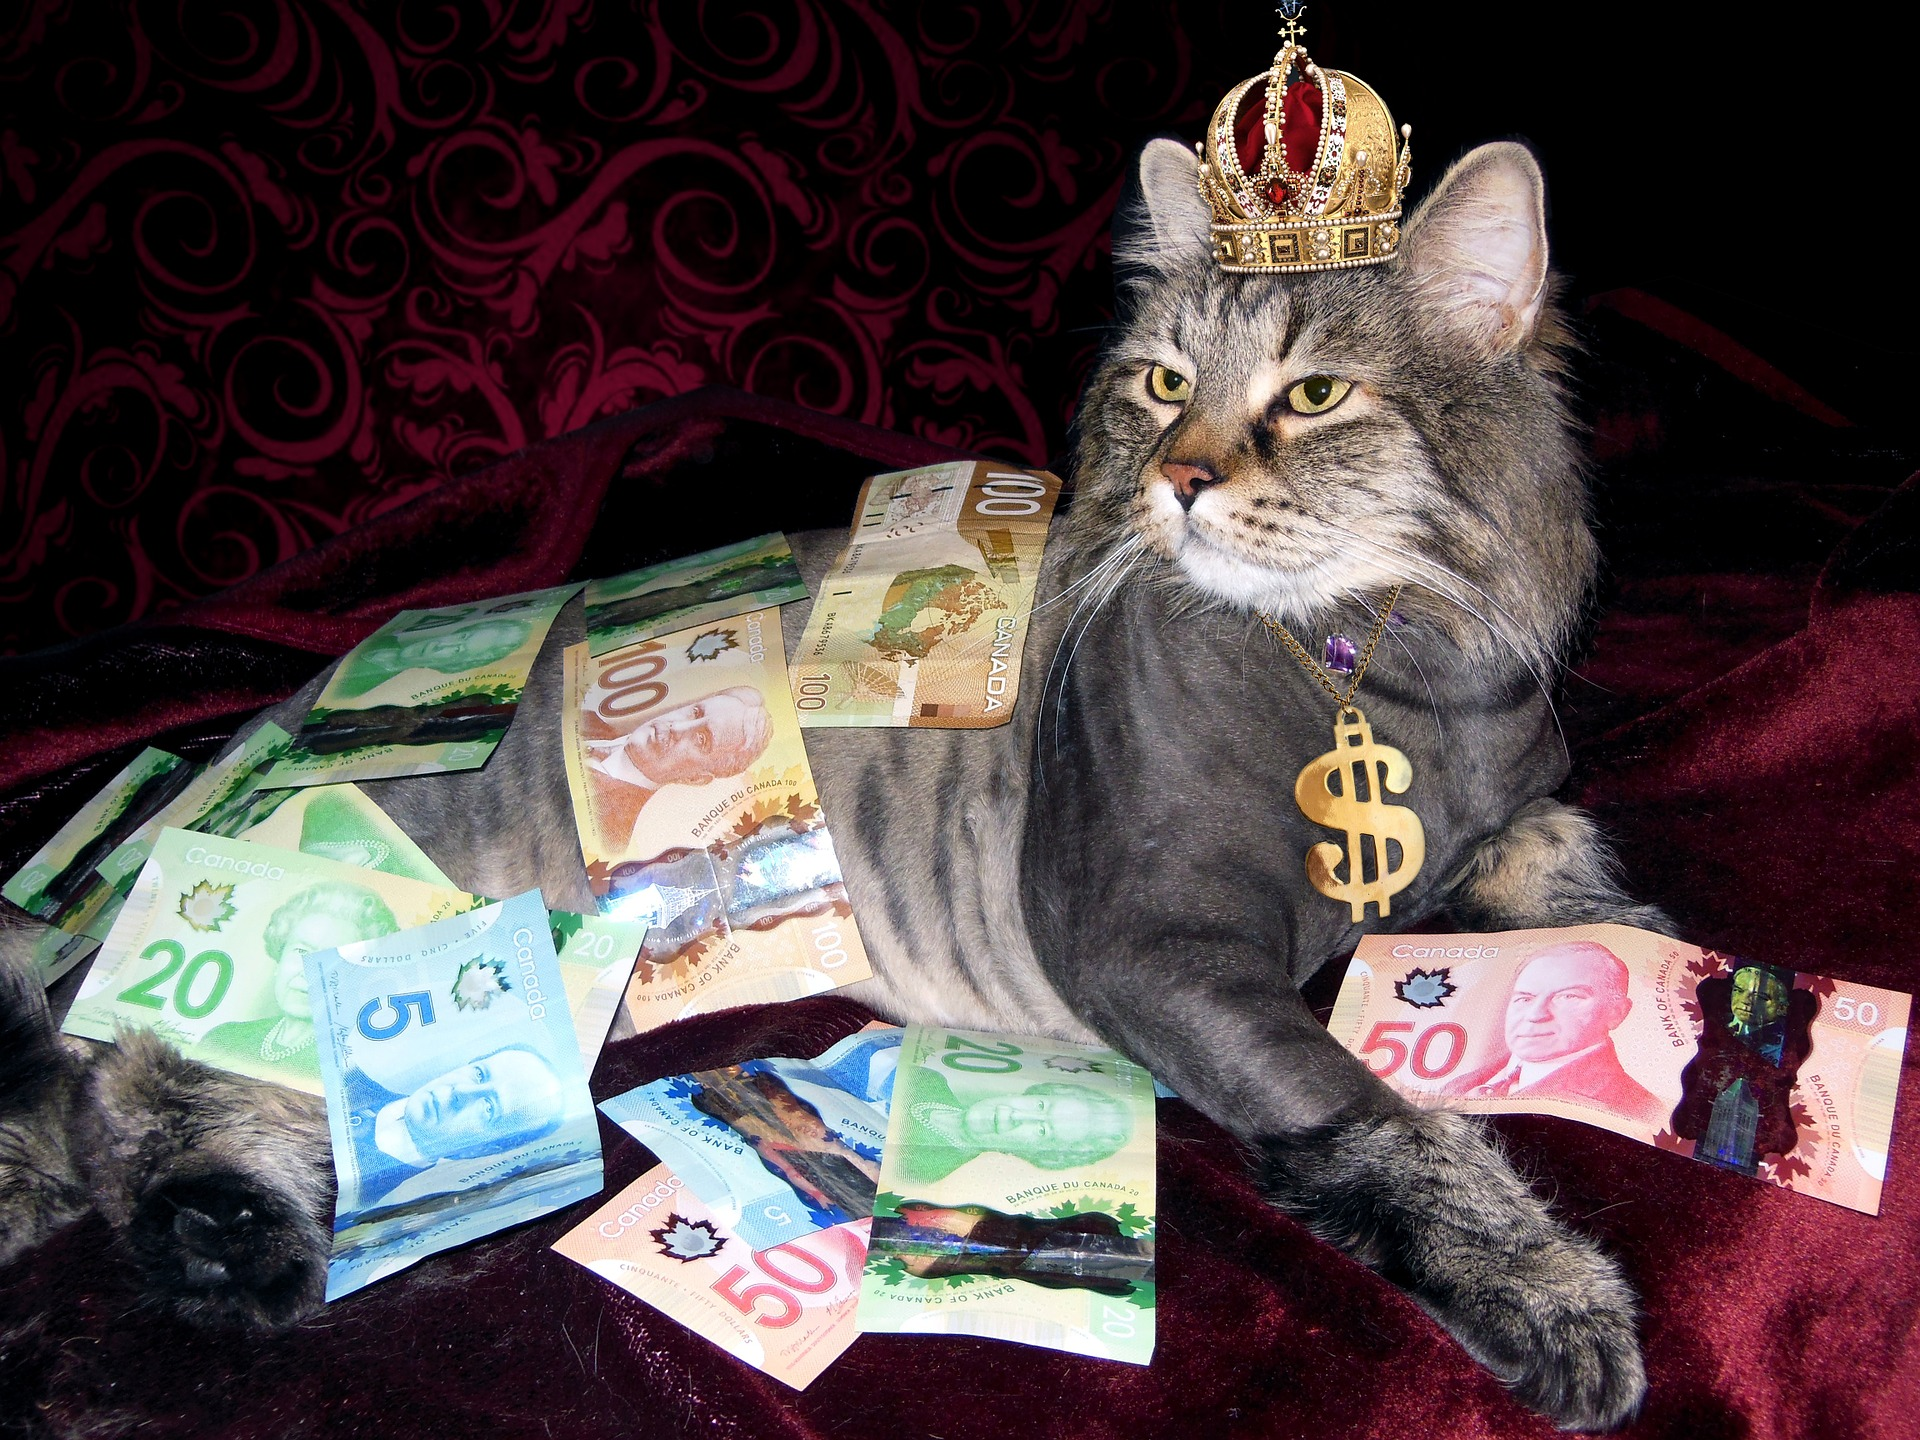 cat hoarding money - money grab